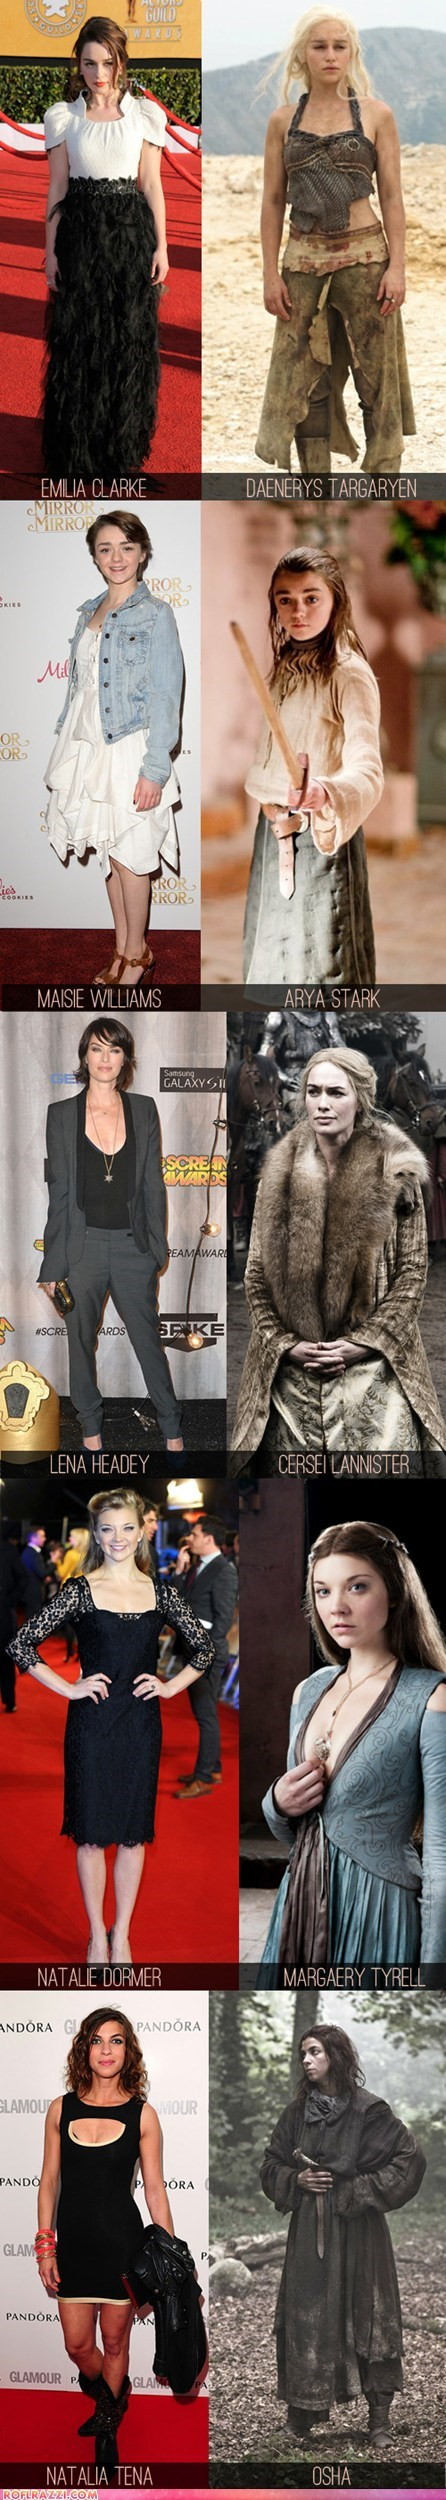 fashion funny celebrity pictures Game of Thrones if style could kill style - 6376272896